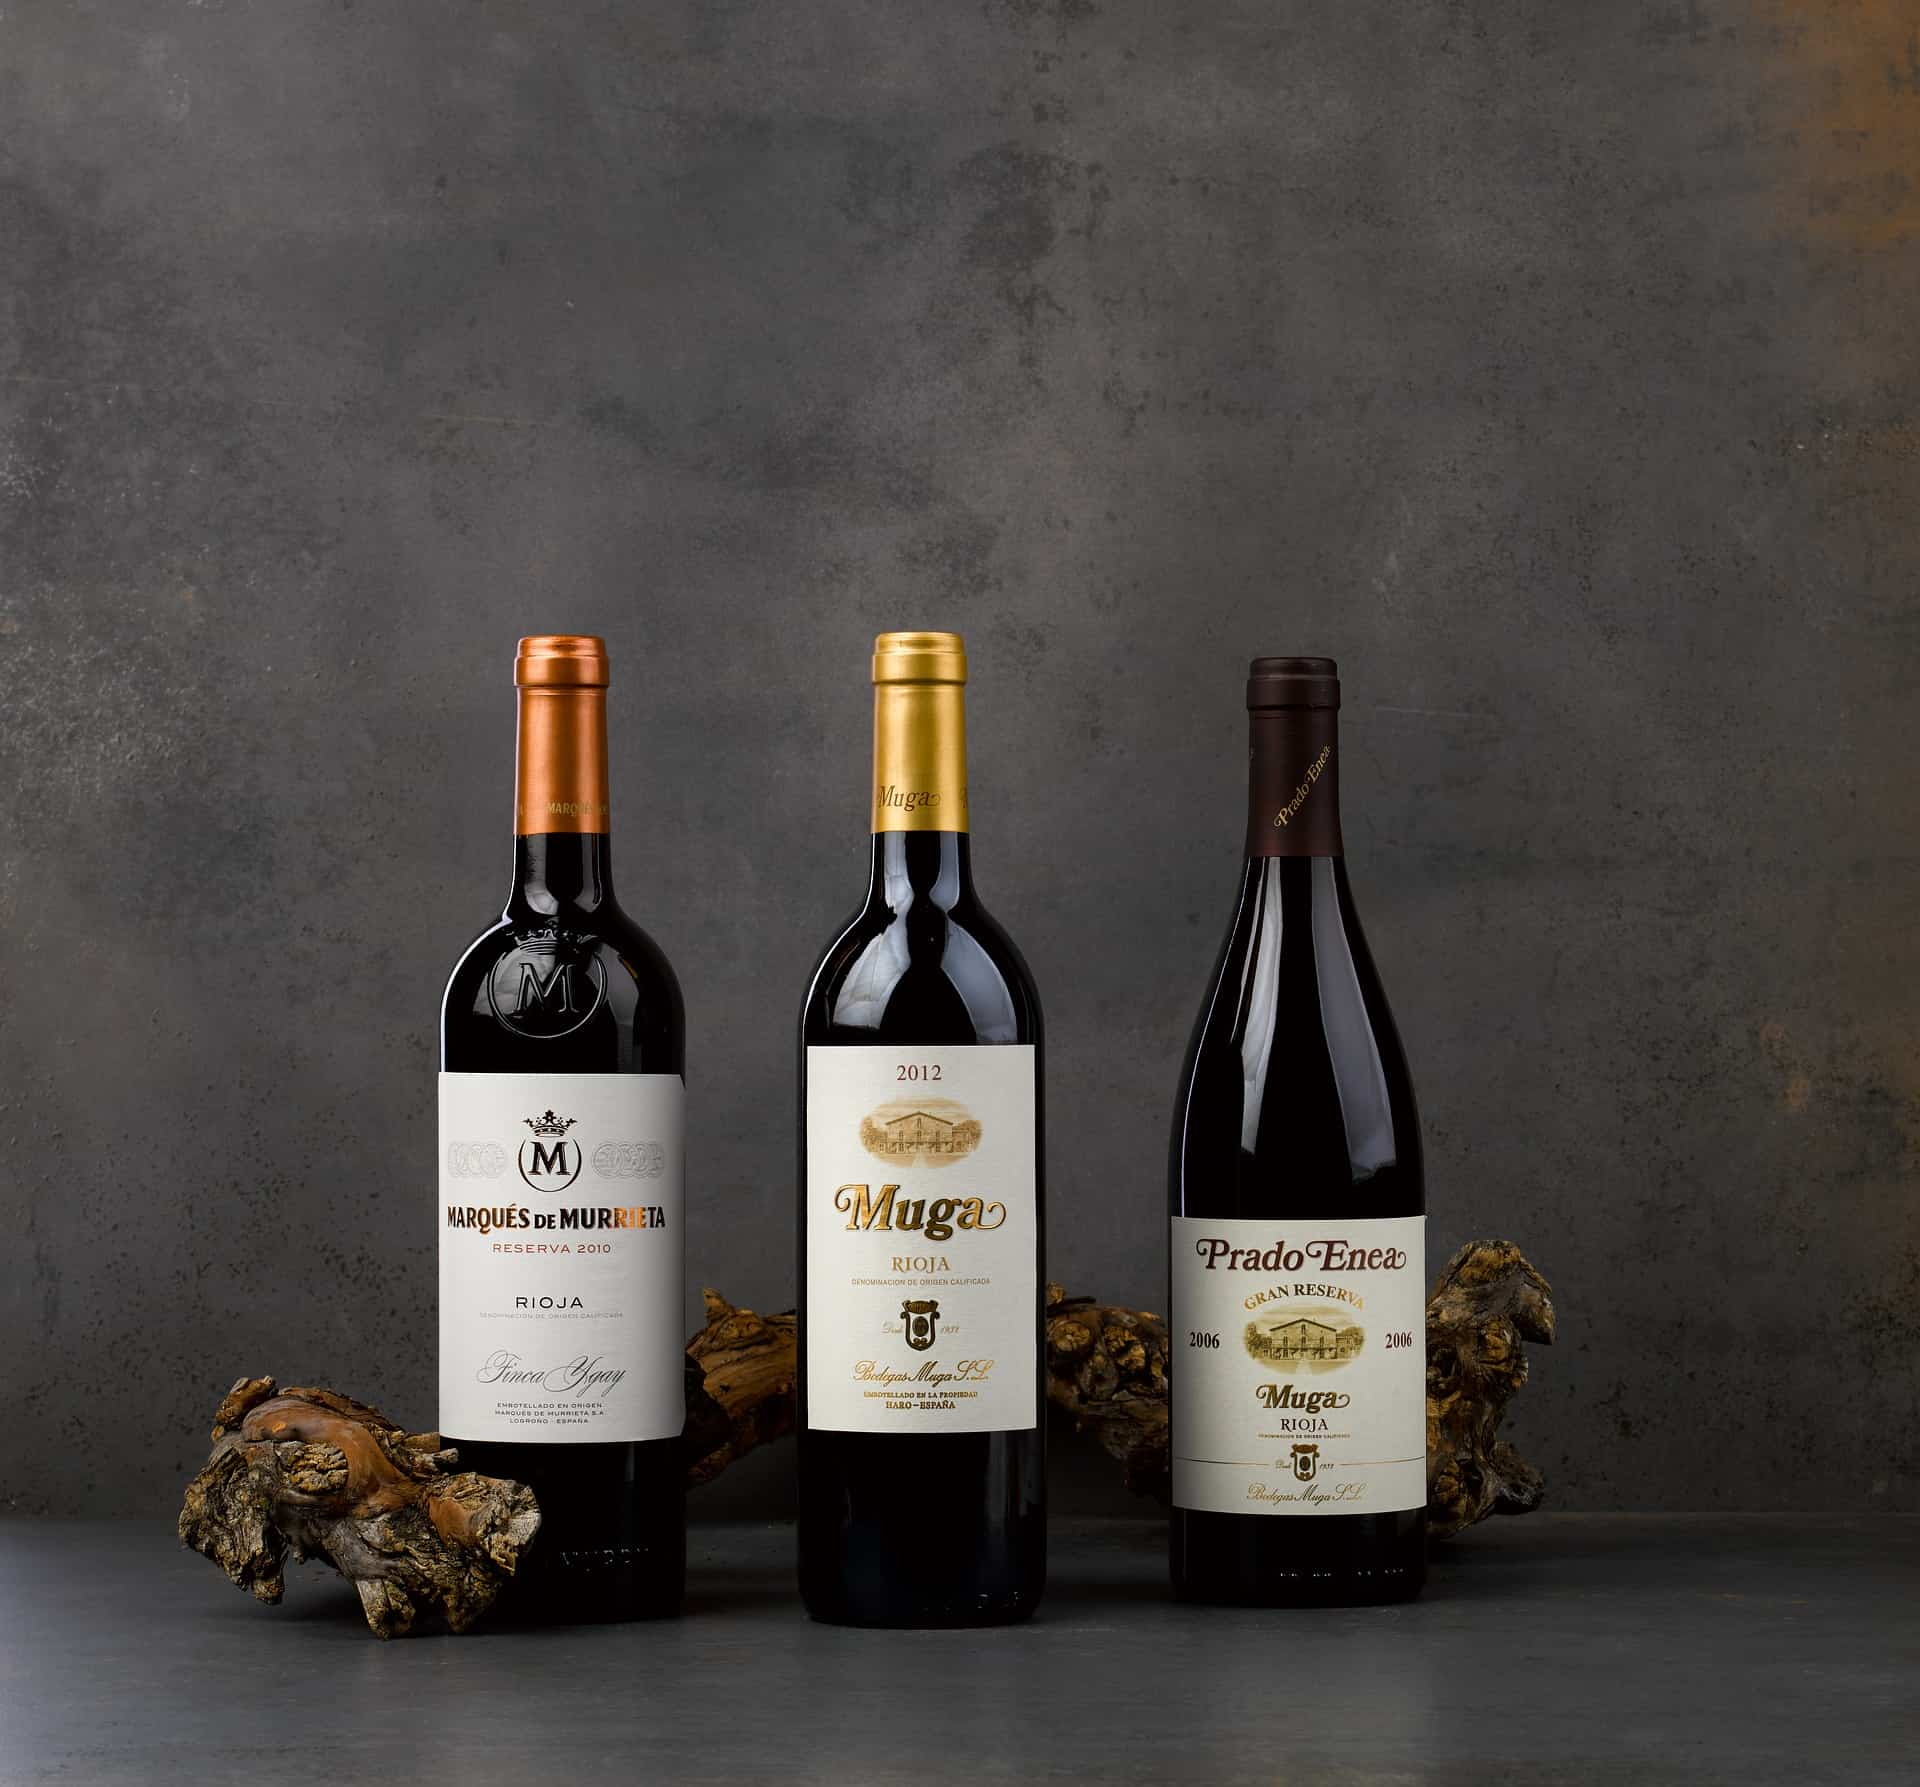 Aging Rioja wine from different vintages